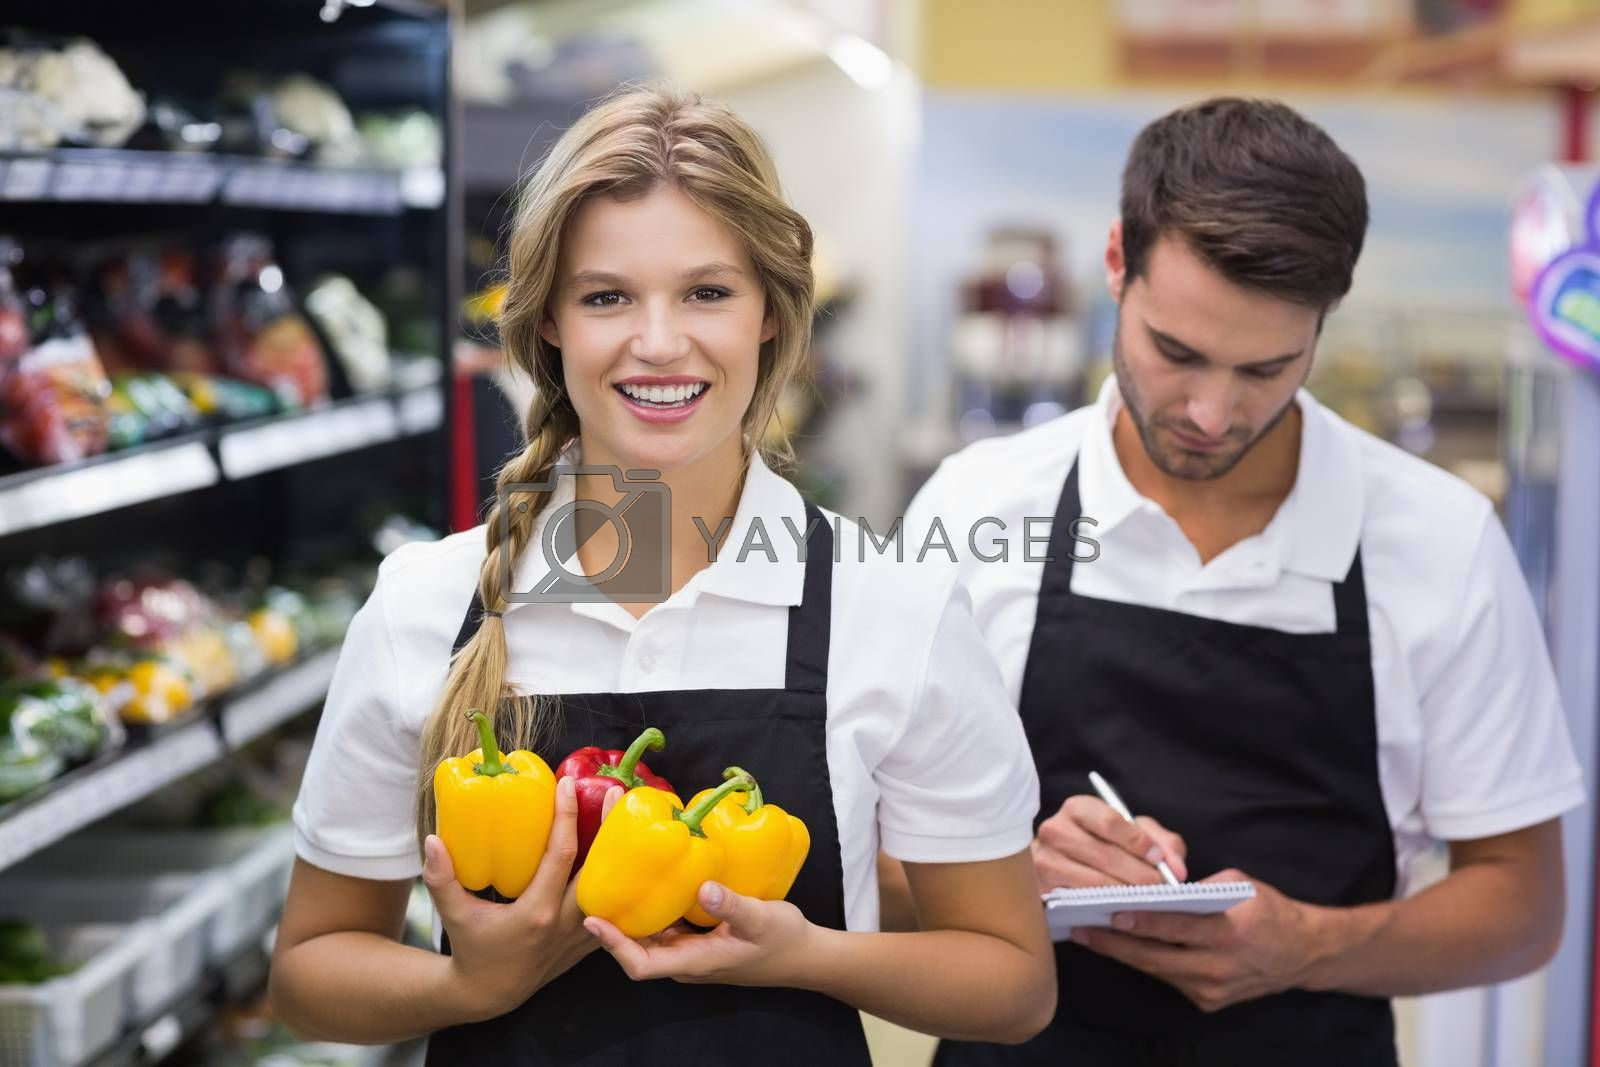 Royalty free image of Portrait of smiling blonde woman having vegetables and writing on notepad  by Wavebreakmedia